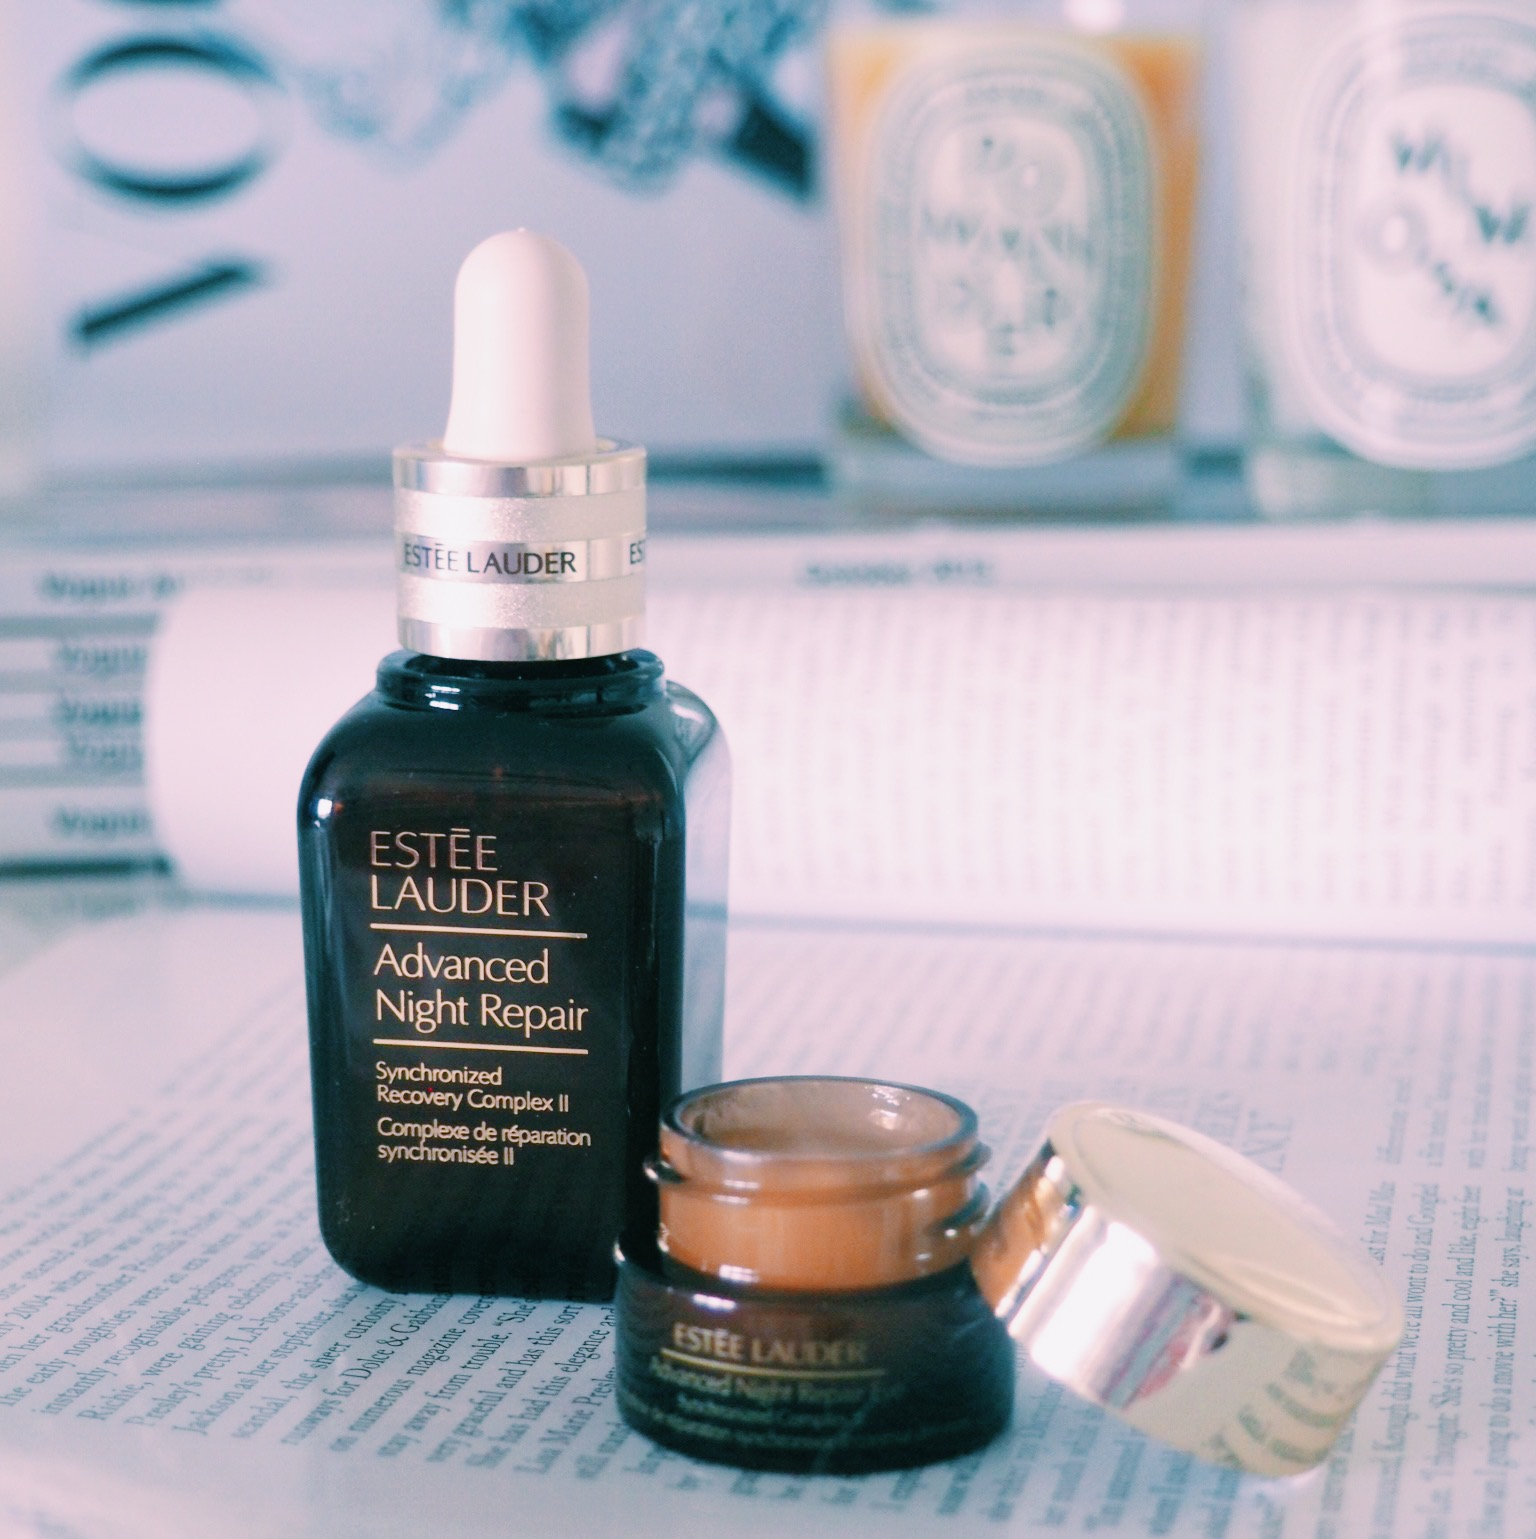 November Beauty Review- hit or miss?